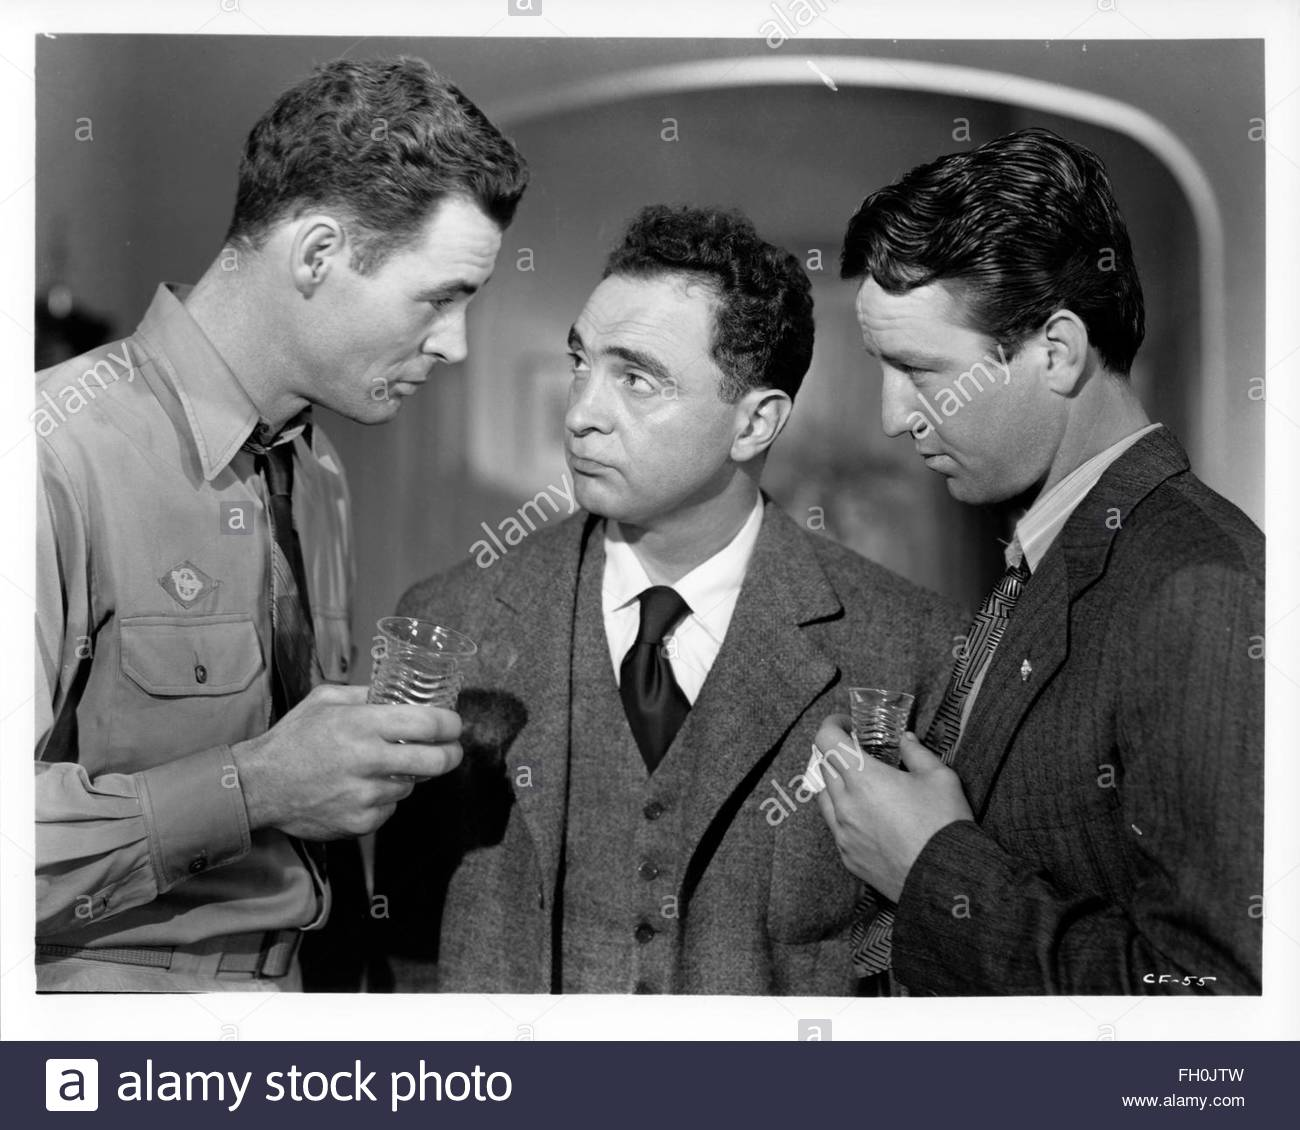 suspense black and white stock photos images alamy crossfire 1947 left right robert ryan joseph samuels steve brodie